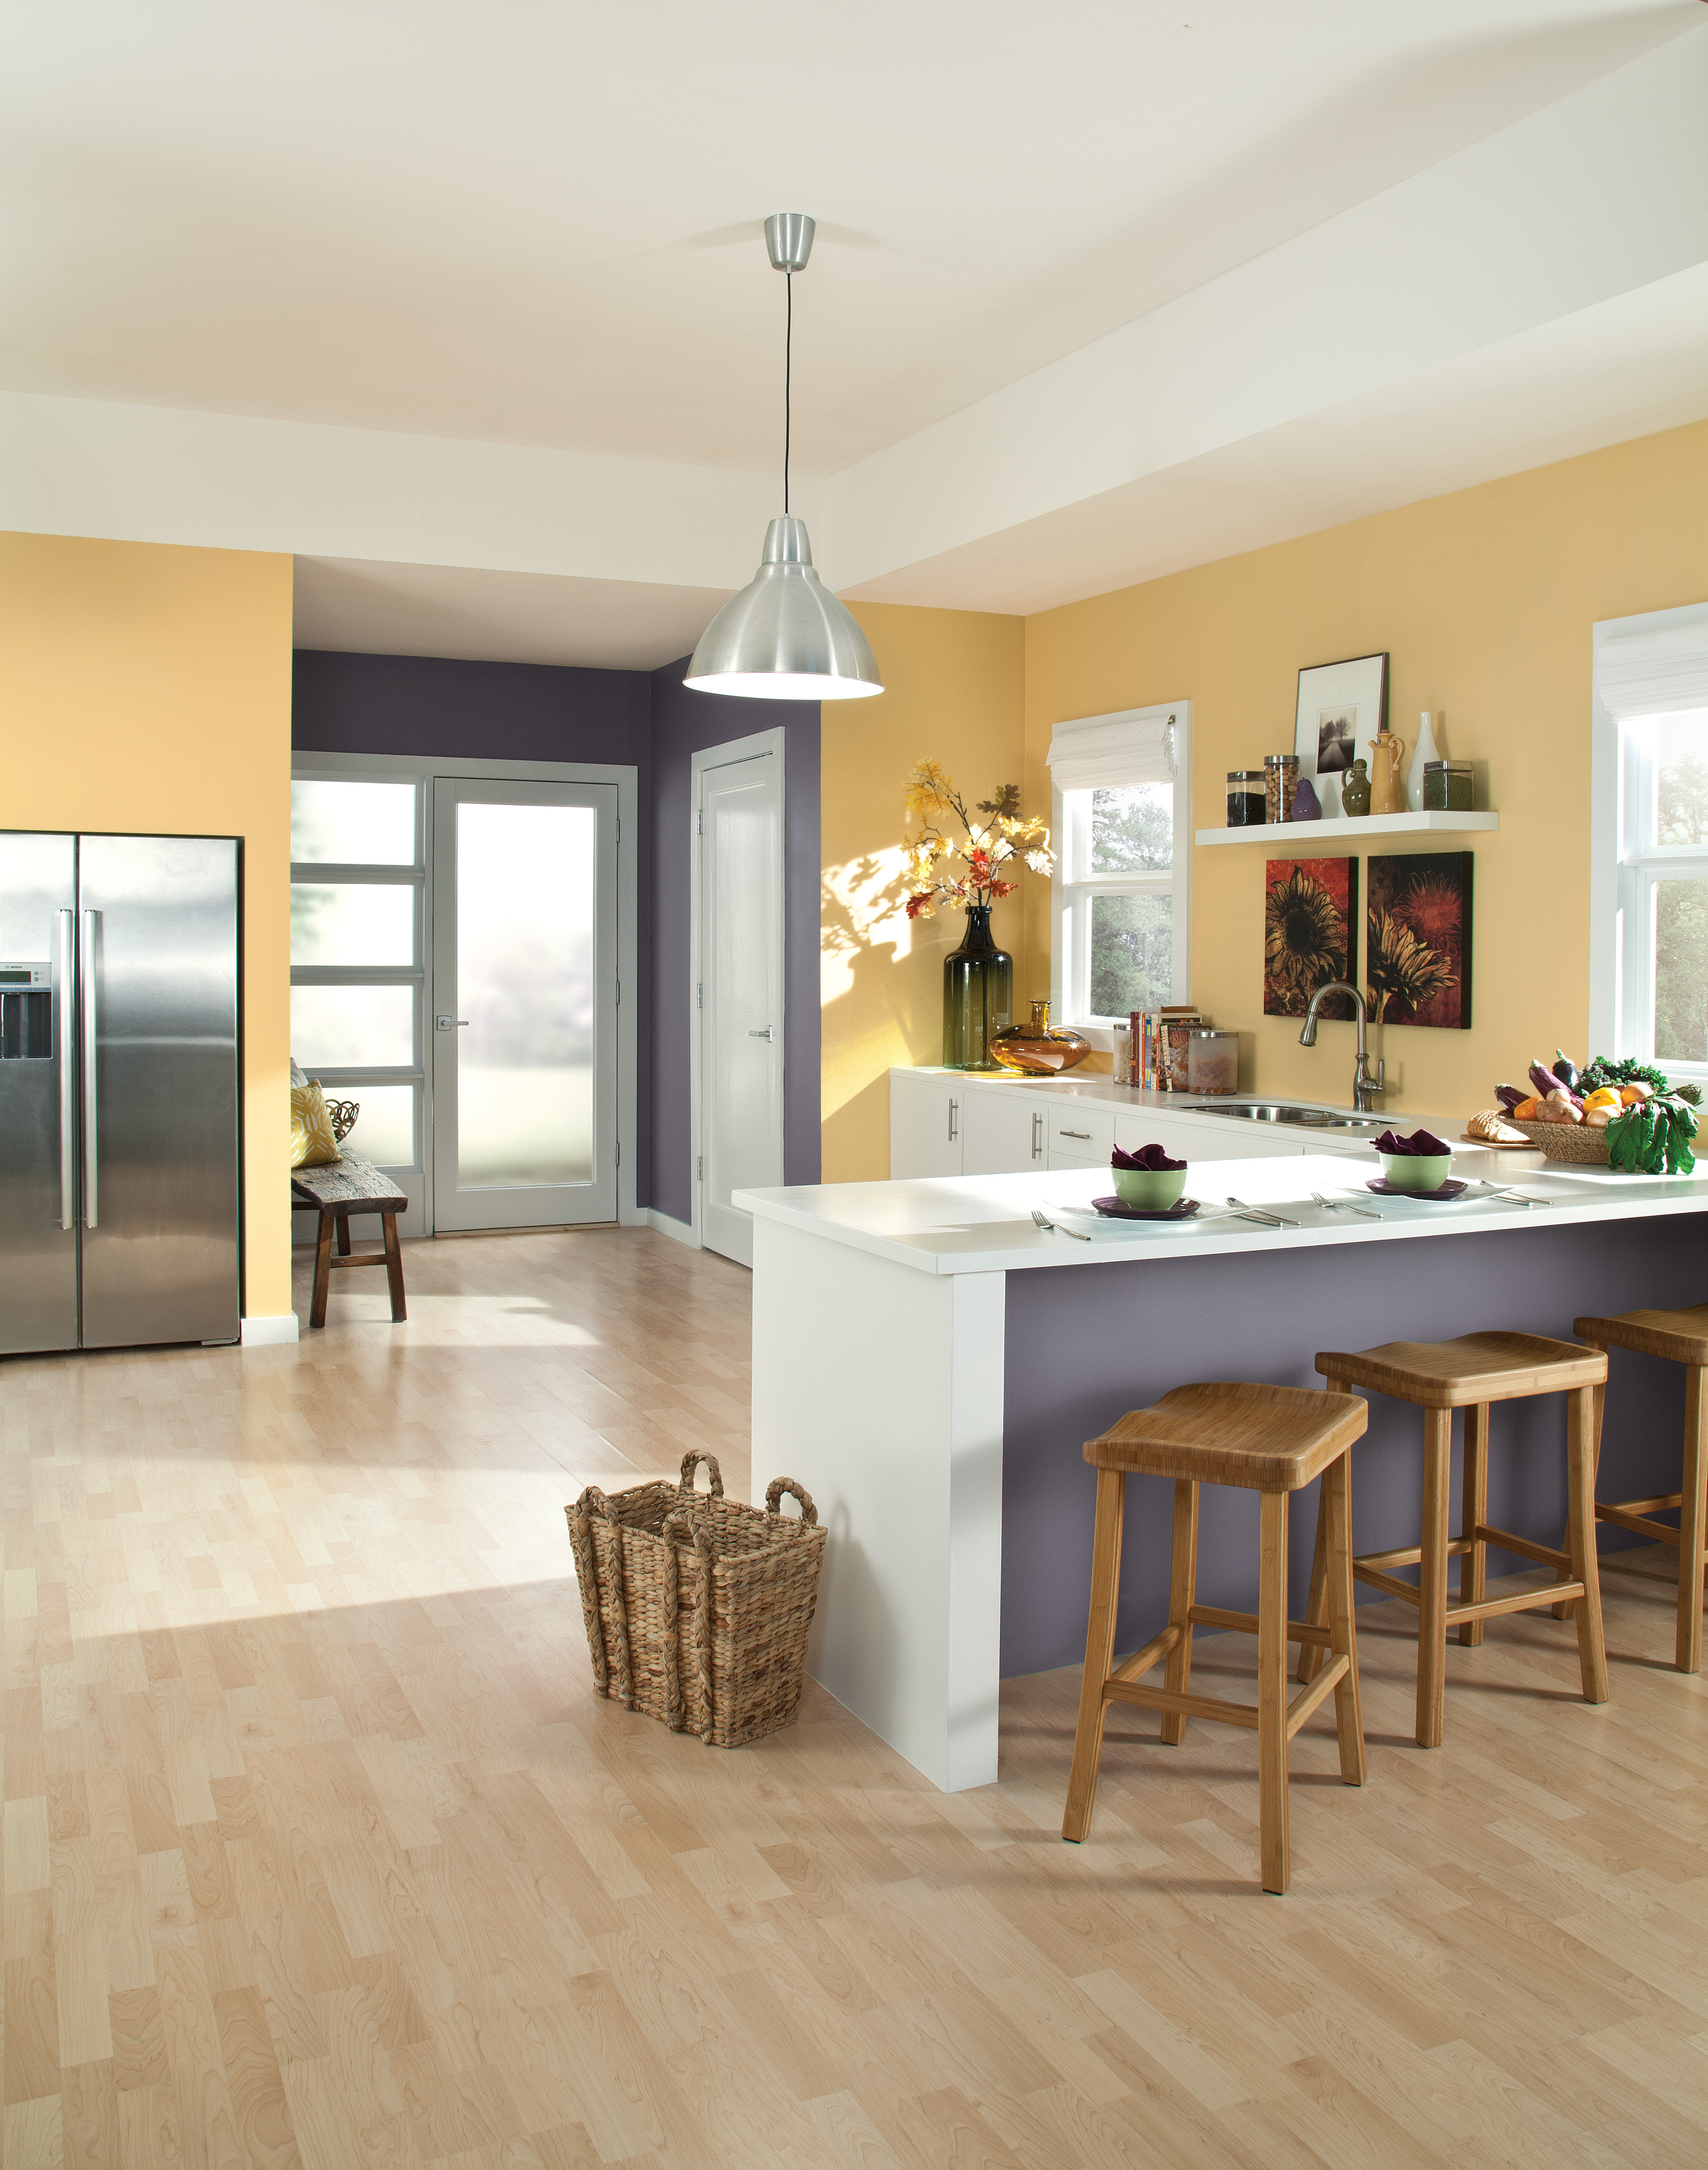 Kitchen with Coordinated Color Scheme